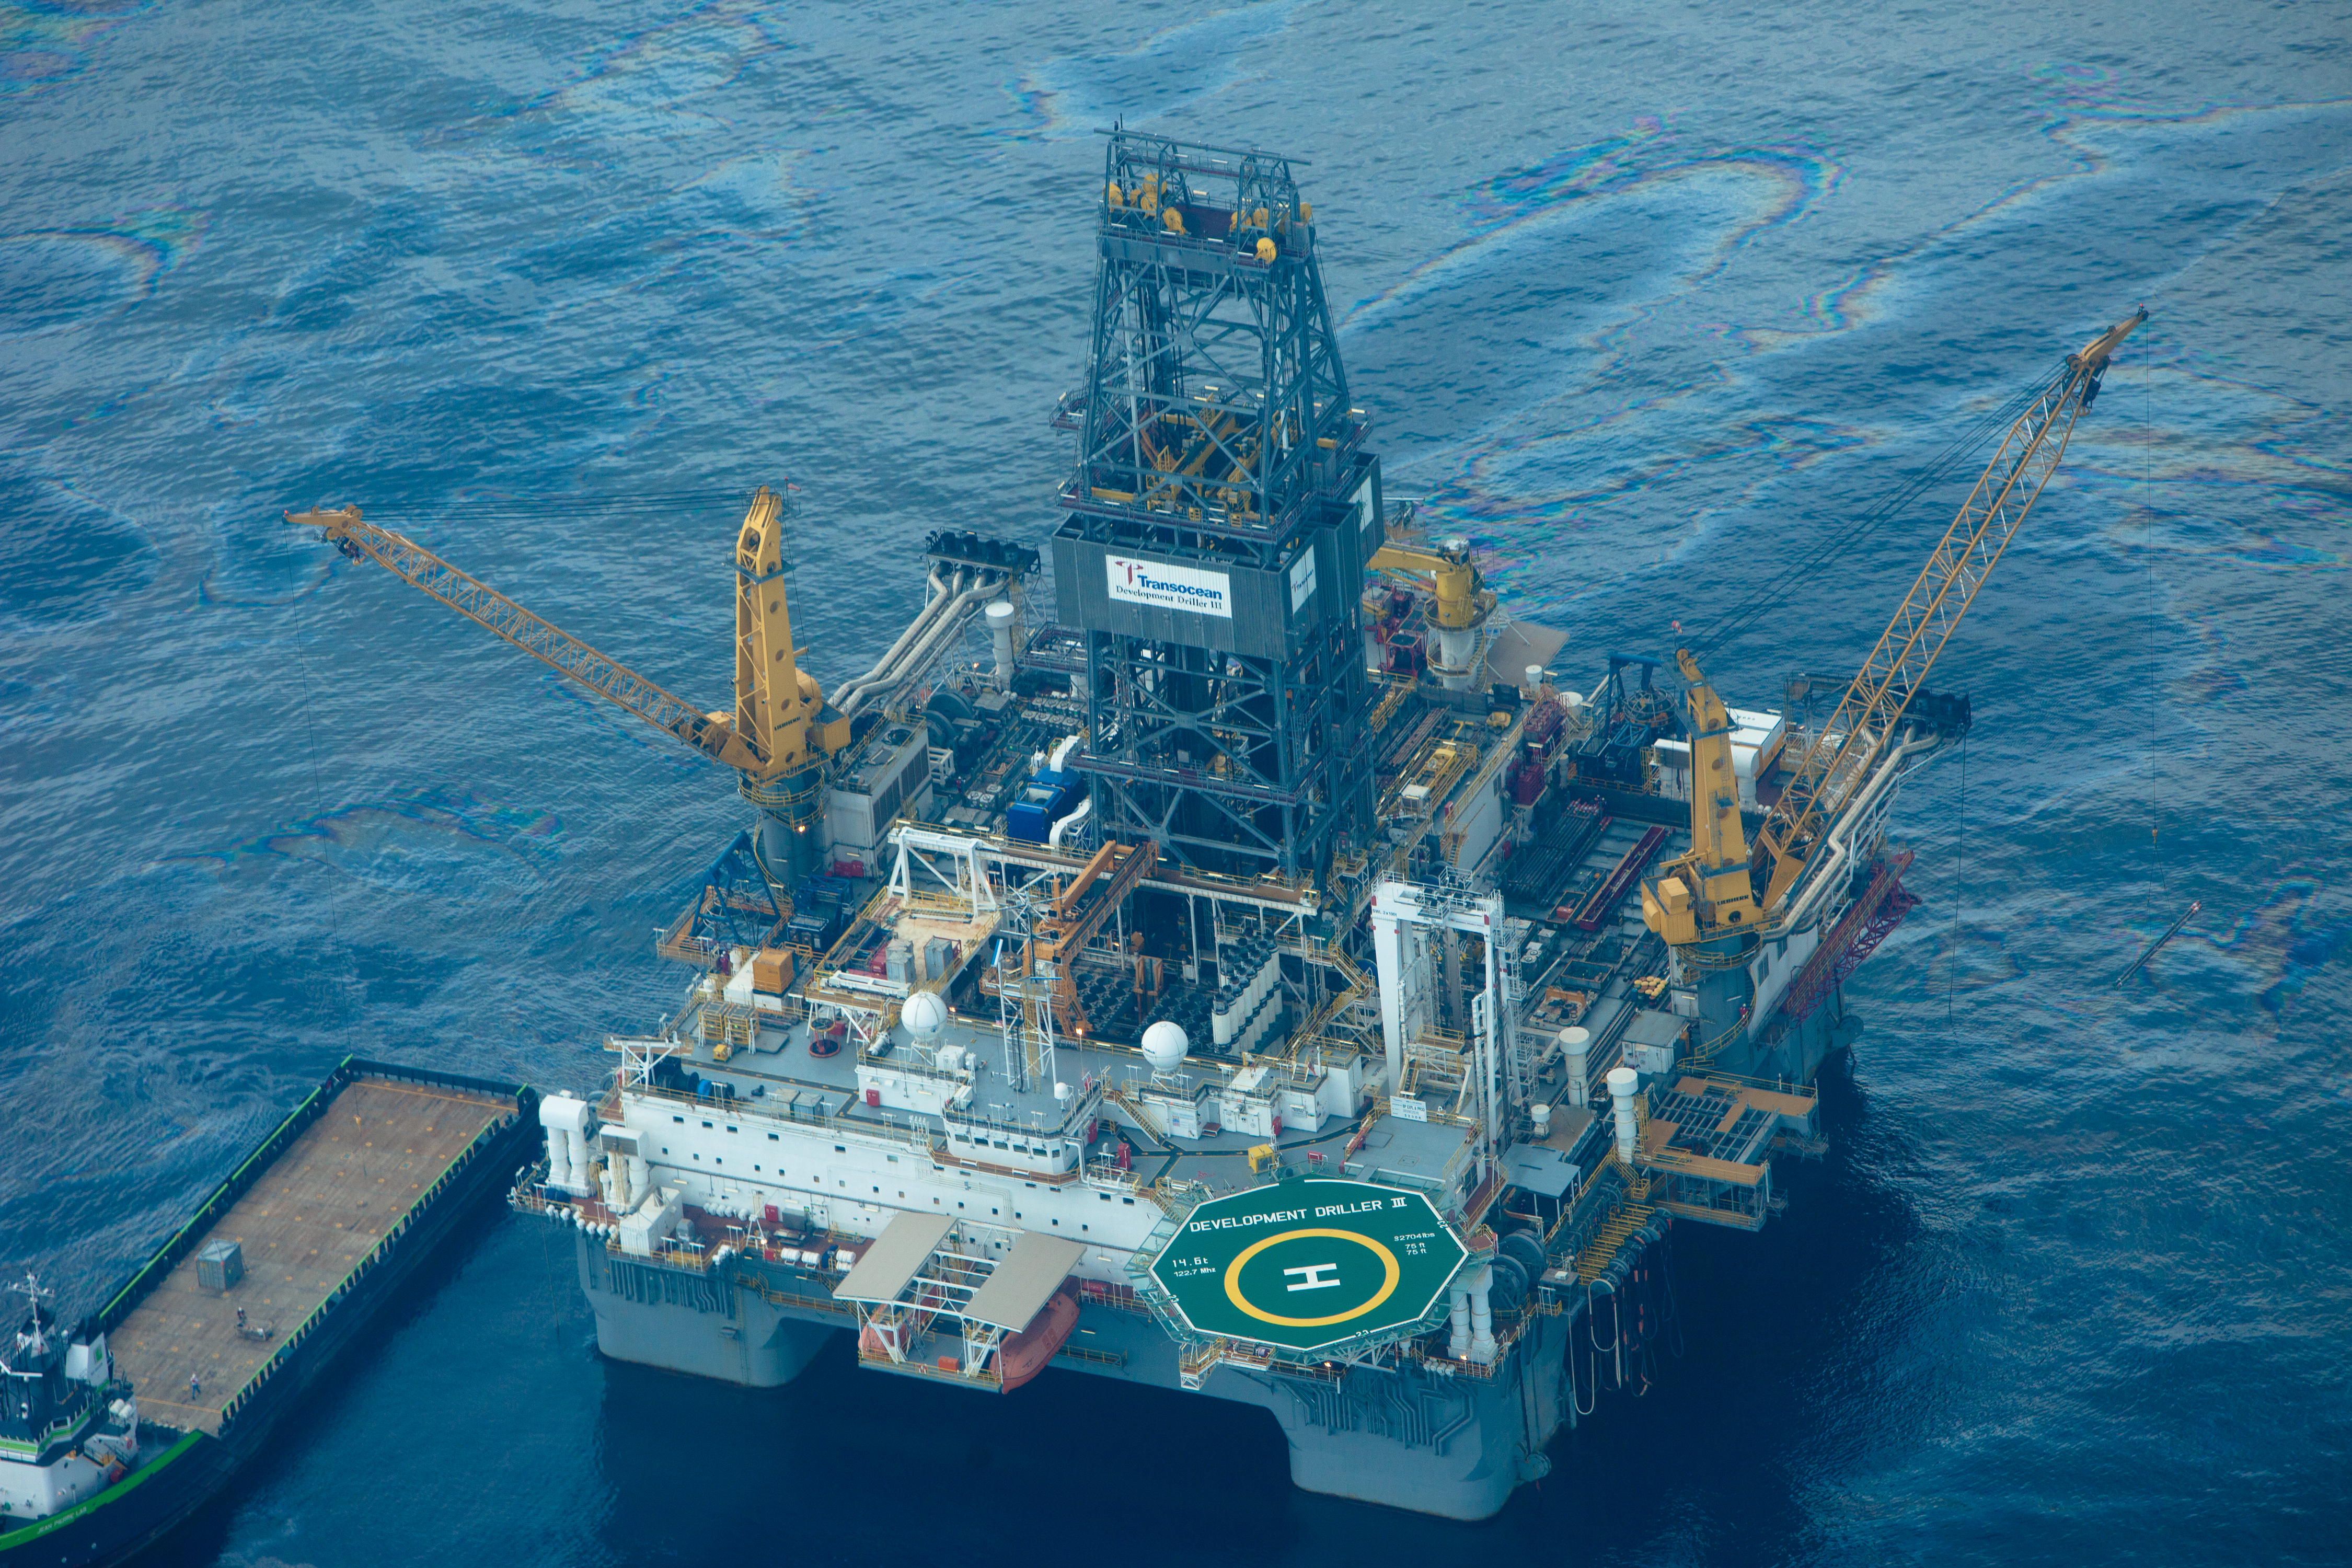 essays on offshore oil drilling Offshore drilling impacts and solutions environmental sciences essay print reference this  published: 23rd march, 2015  disclaimer: this essay has been submitted by a student this is not.